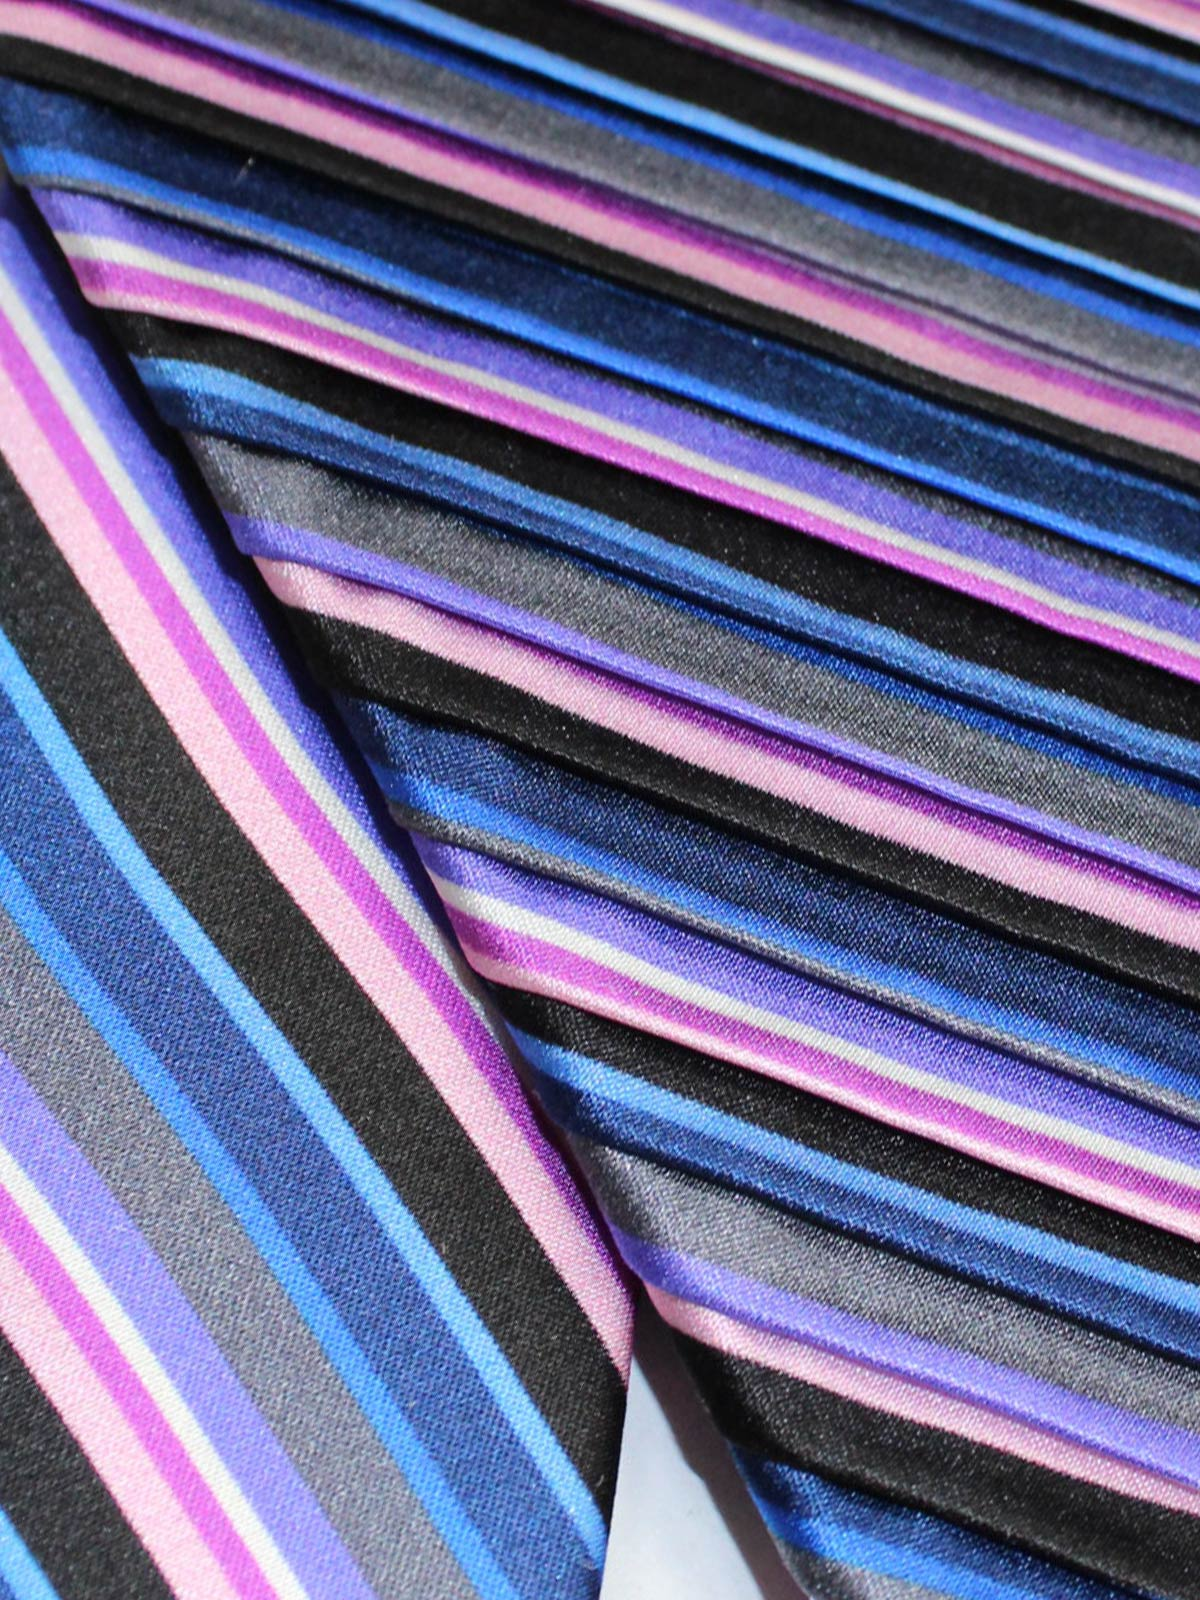 Vitaliano Pancaldi PLEATED SILK Tie Black Gray Purple Pink Stripes